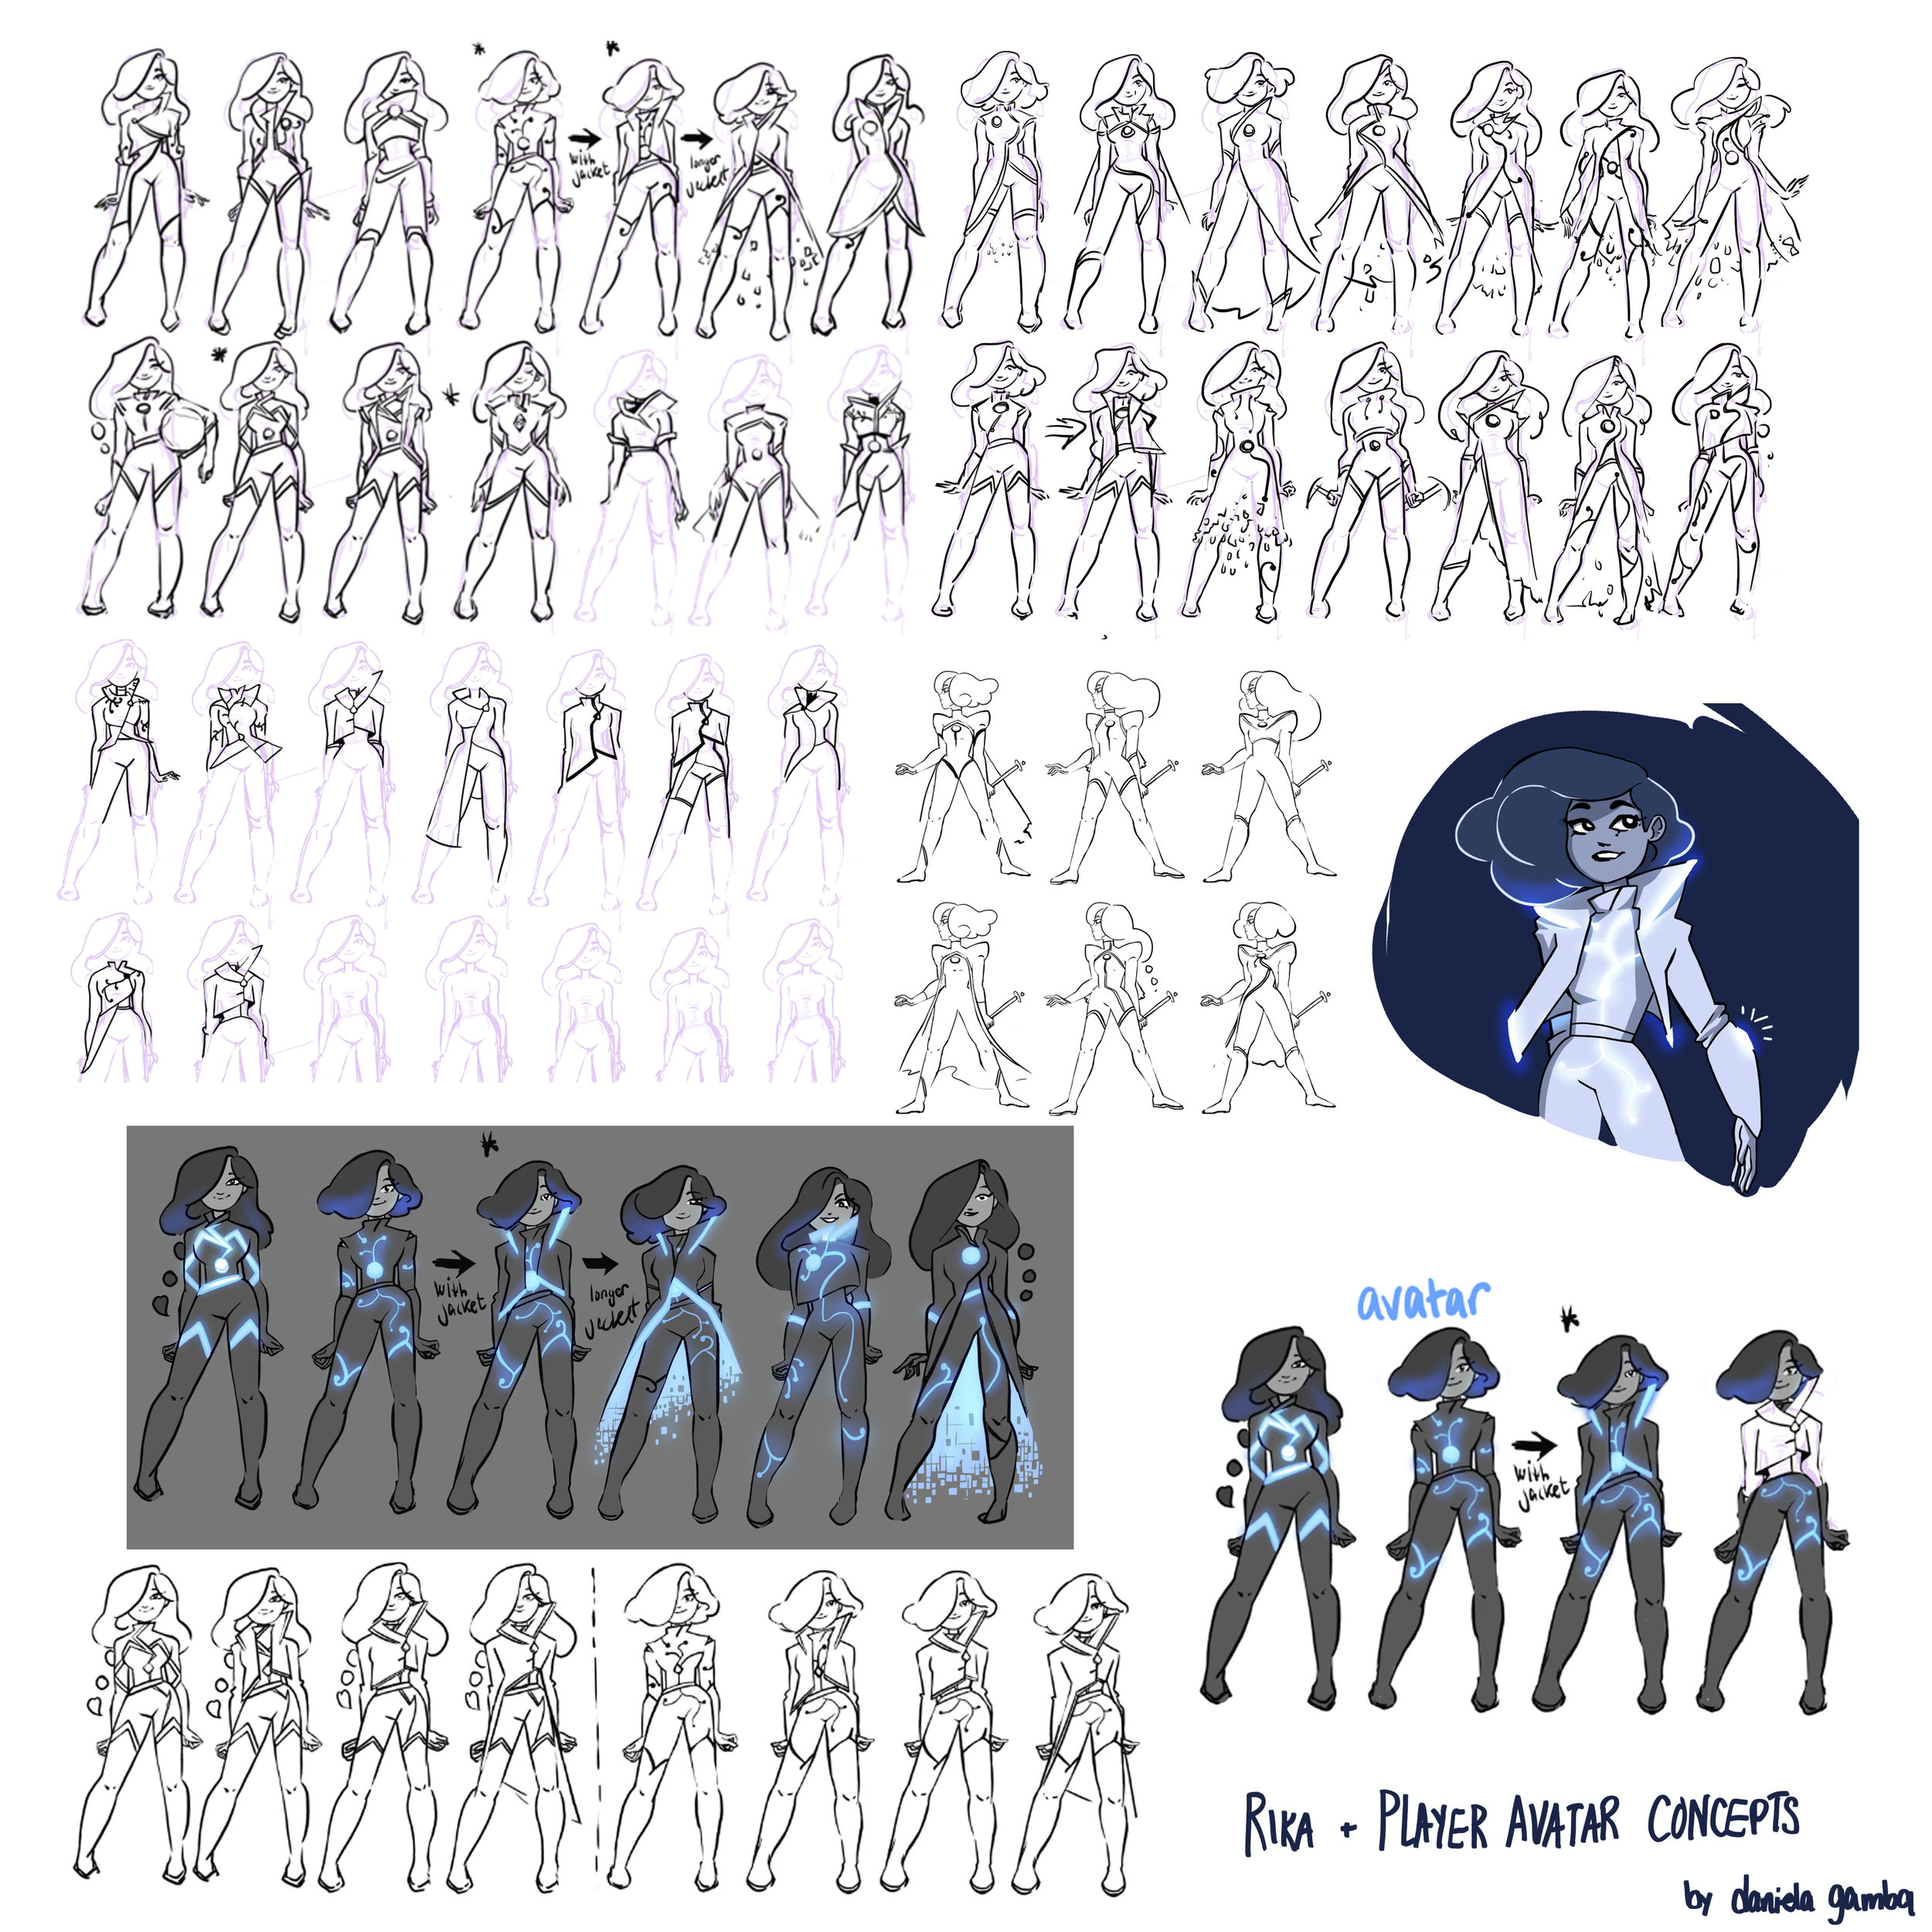 Character and avatar concepts for Pyr.